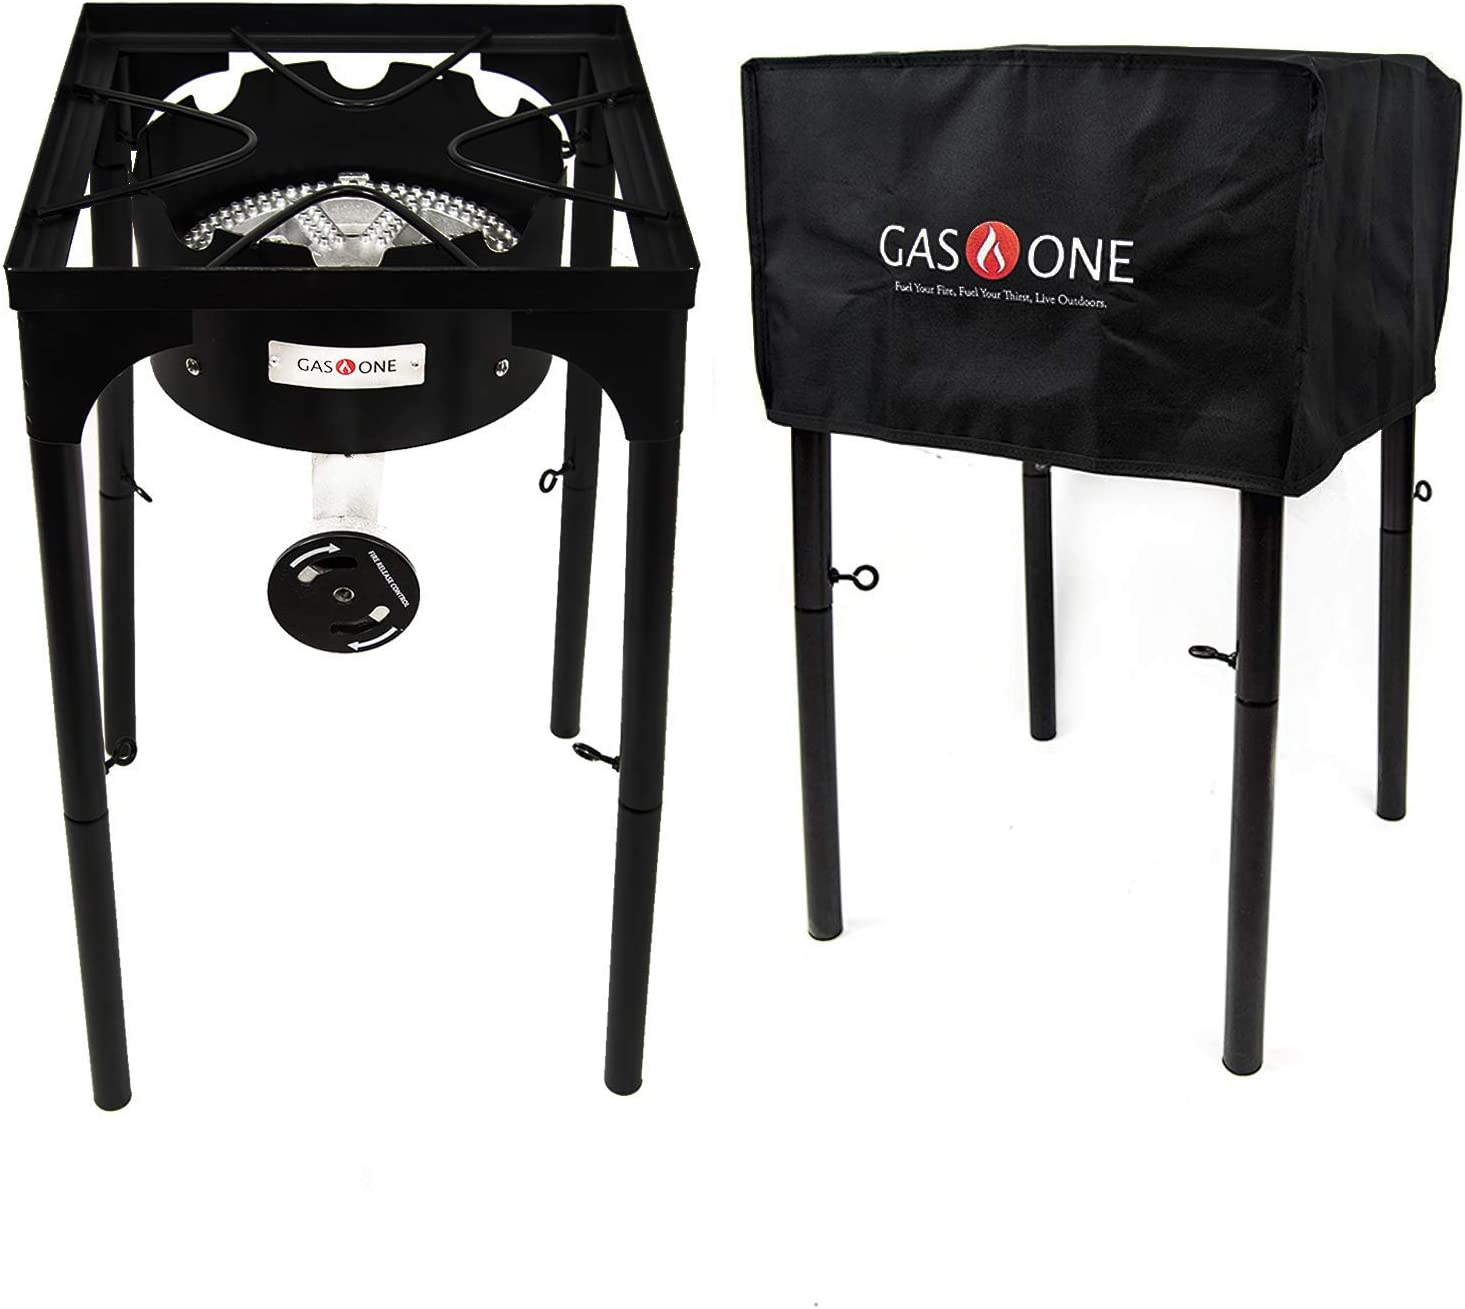 Duty Single Burner Outdoor Stove Propane... Gas ONE 200,000 BTU Square Heavy